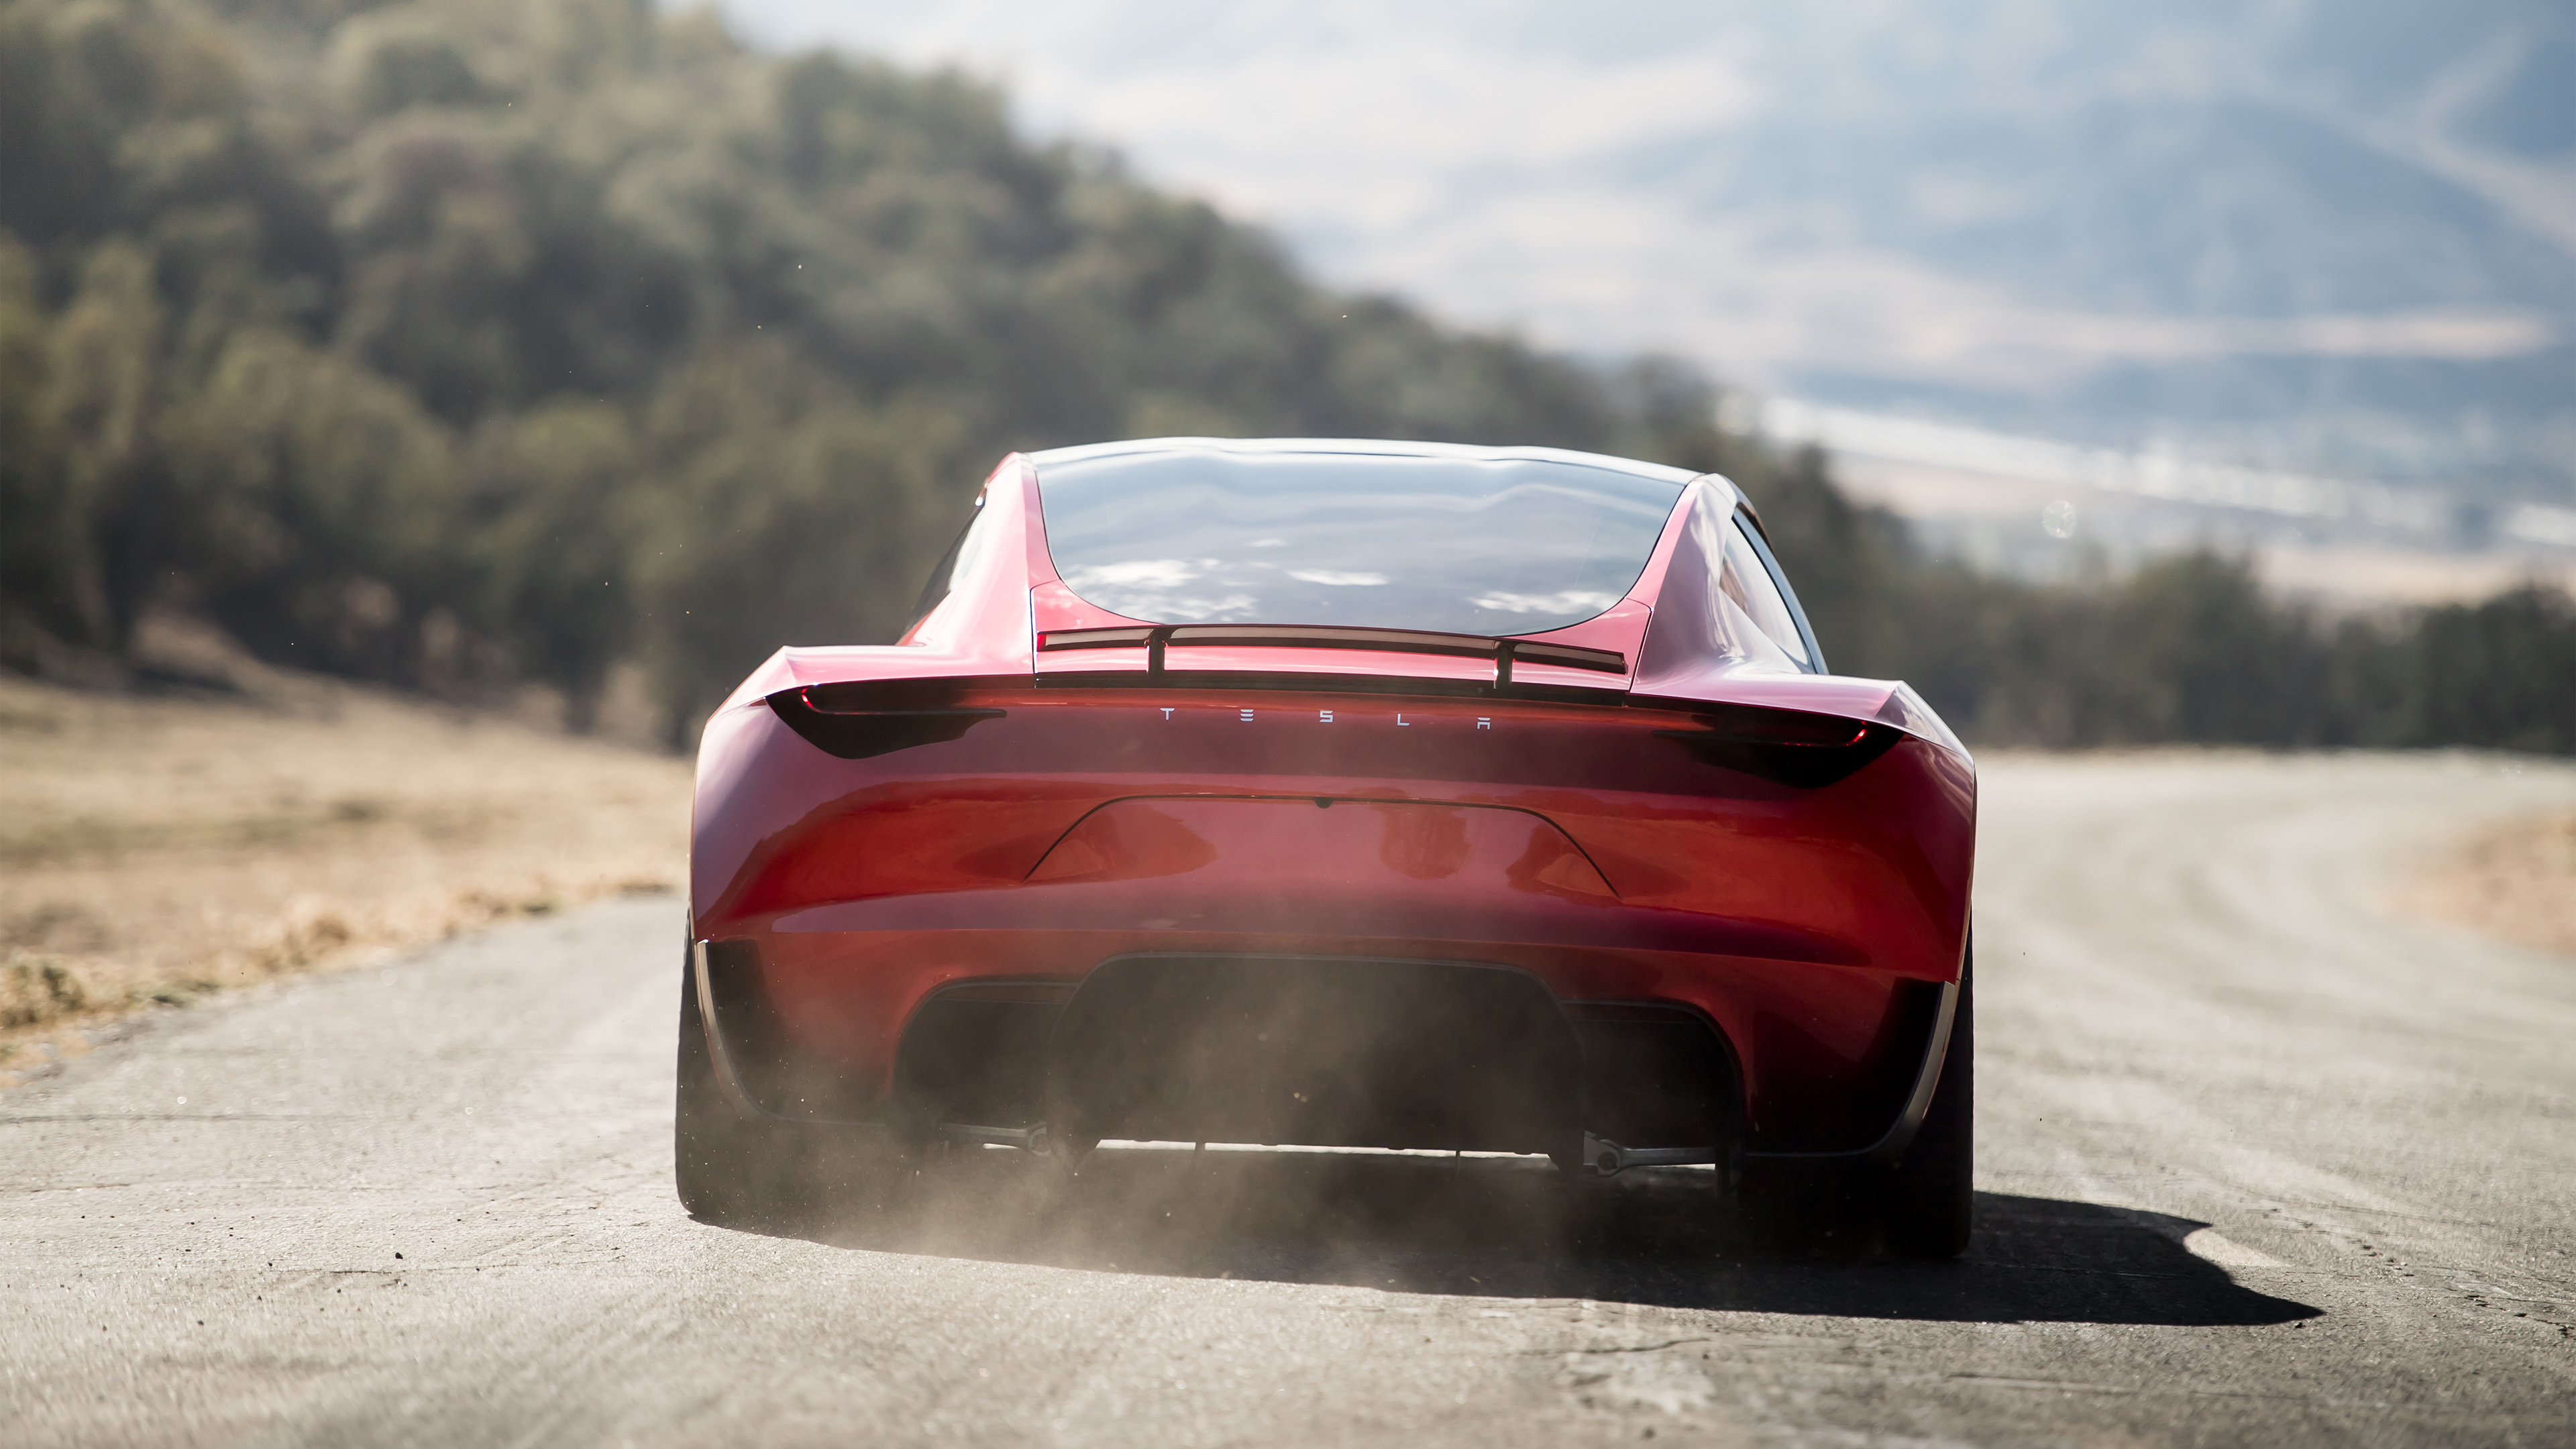 2020 Tesla Roadster 4k 7 Wallpaper Hd Car Wallpapers Id 9109